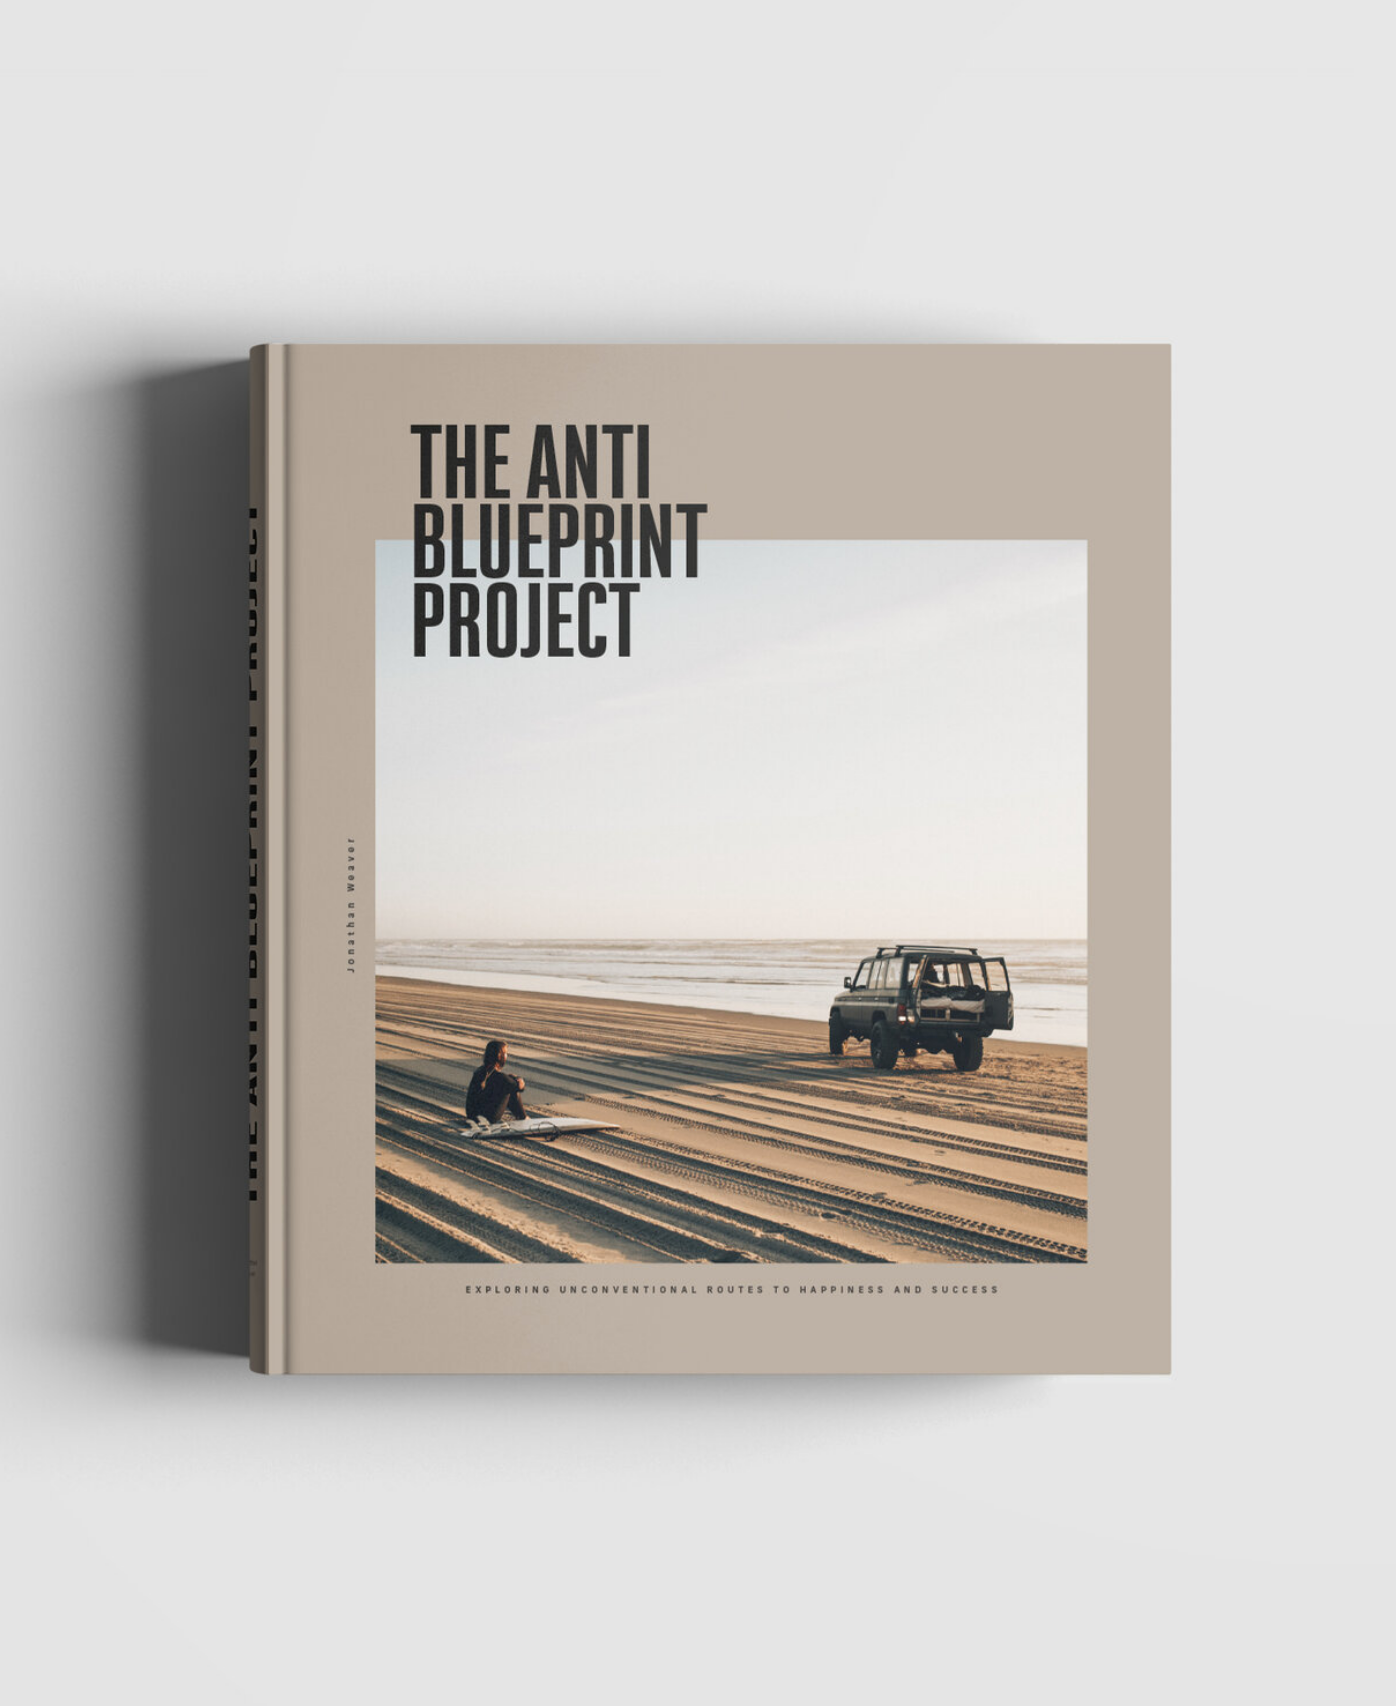 The Anti Blueprint Project Book